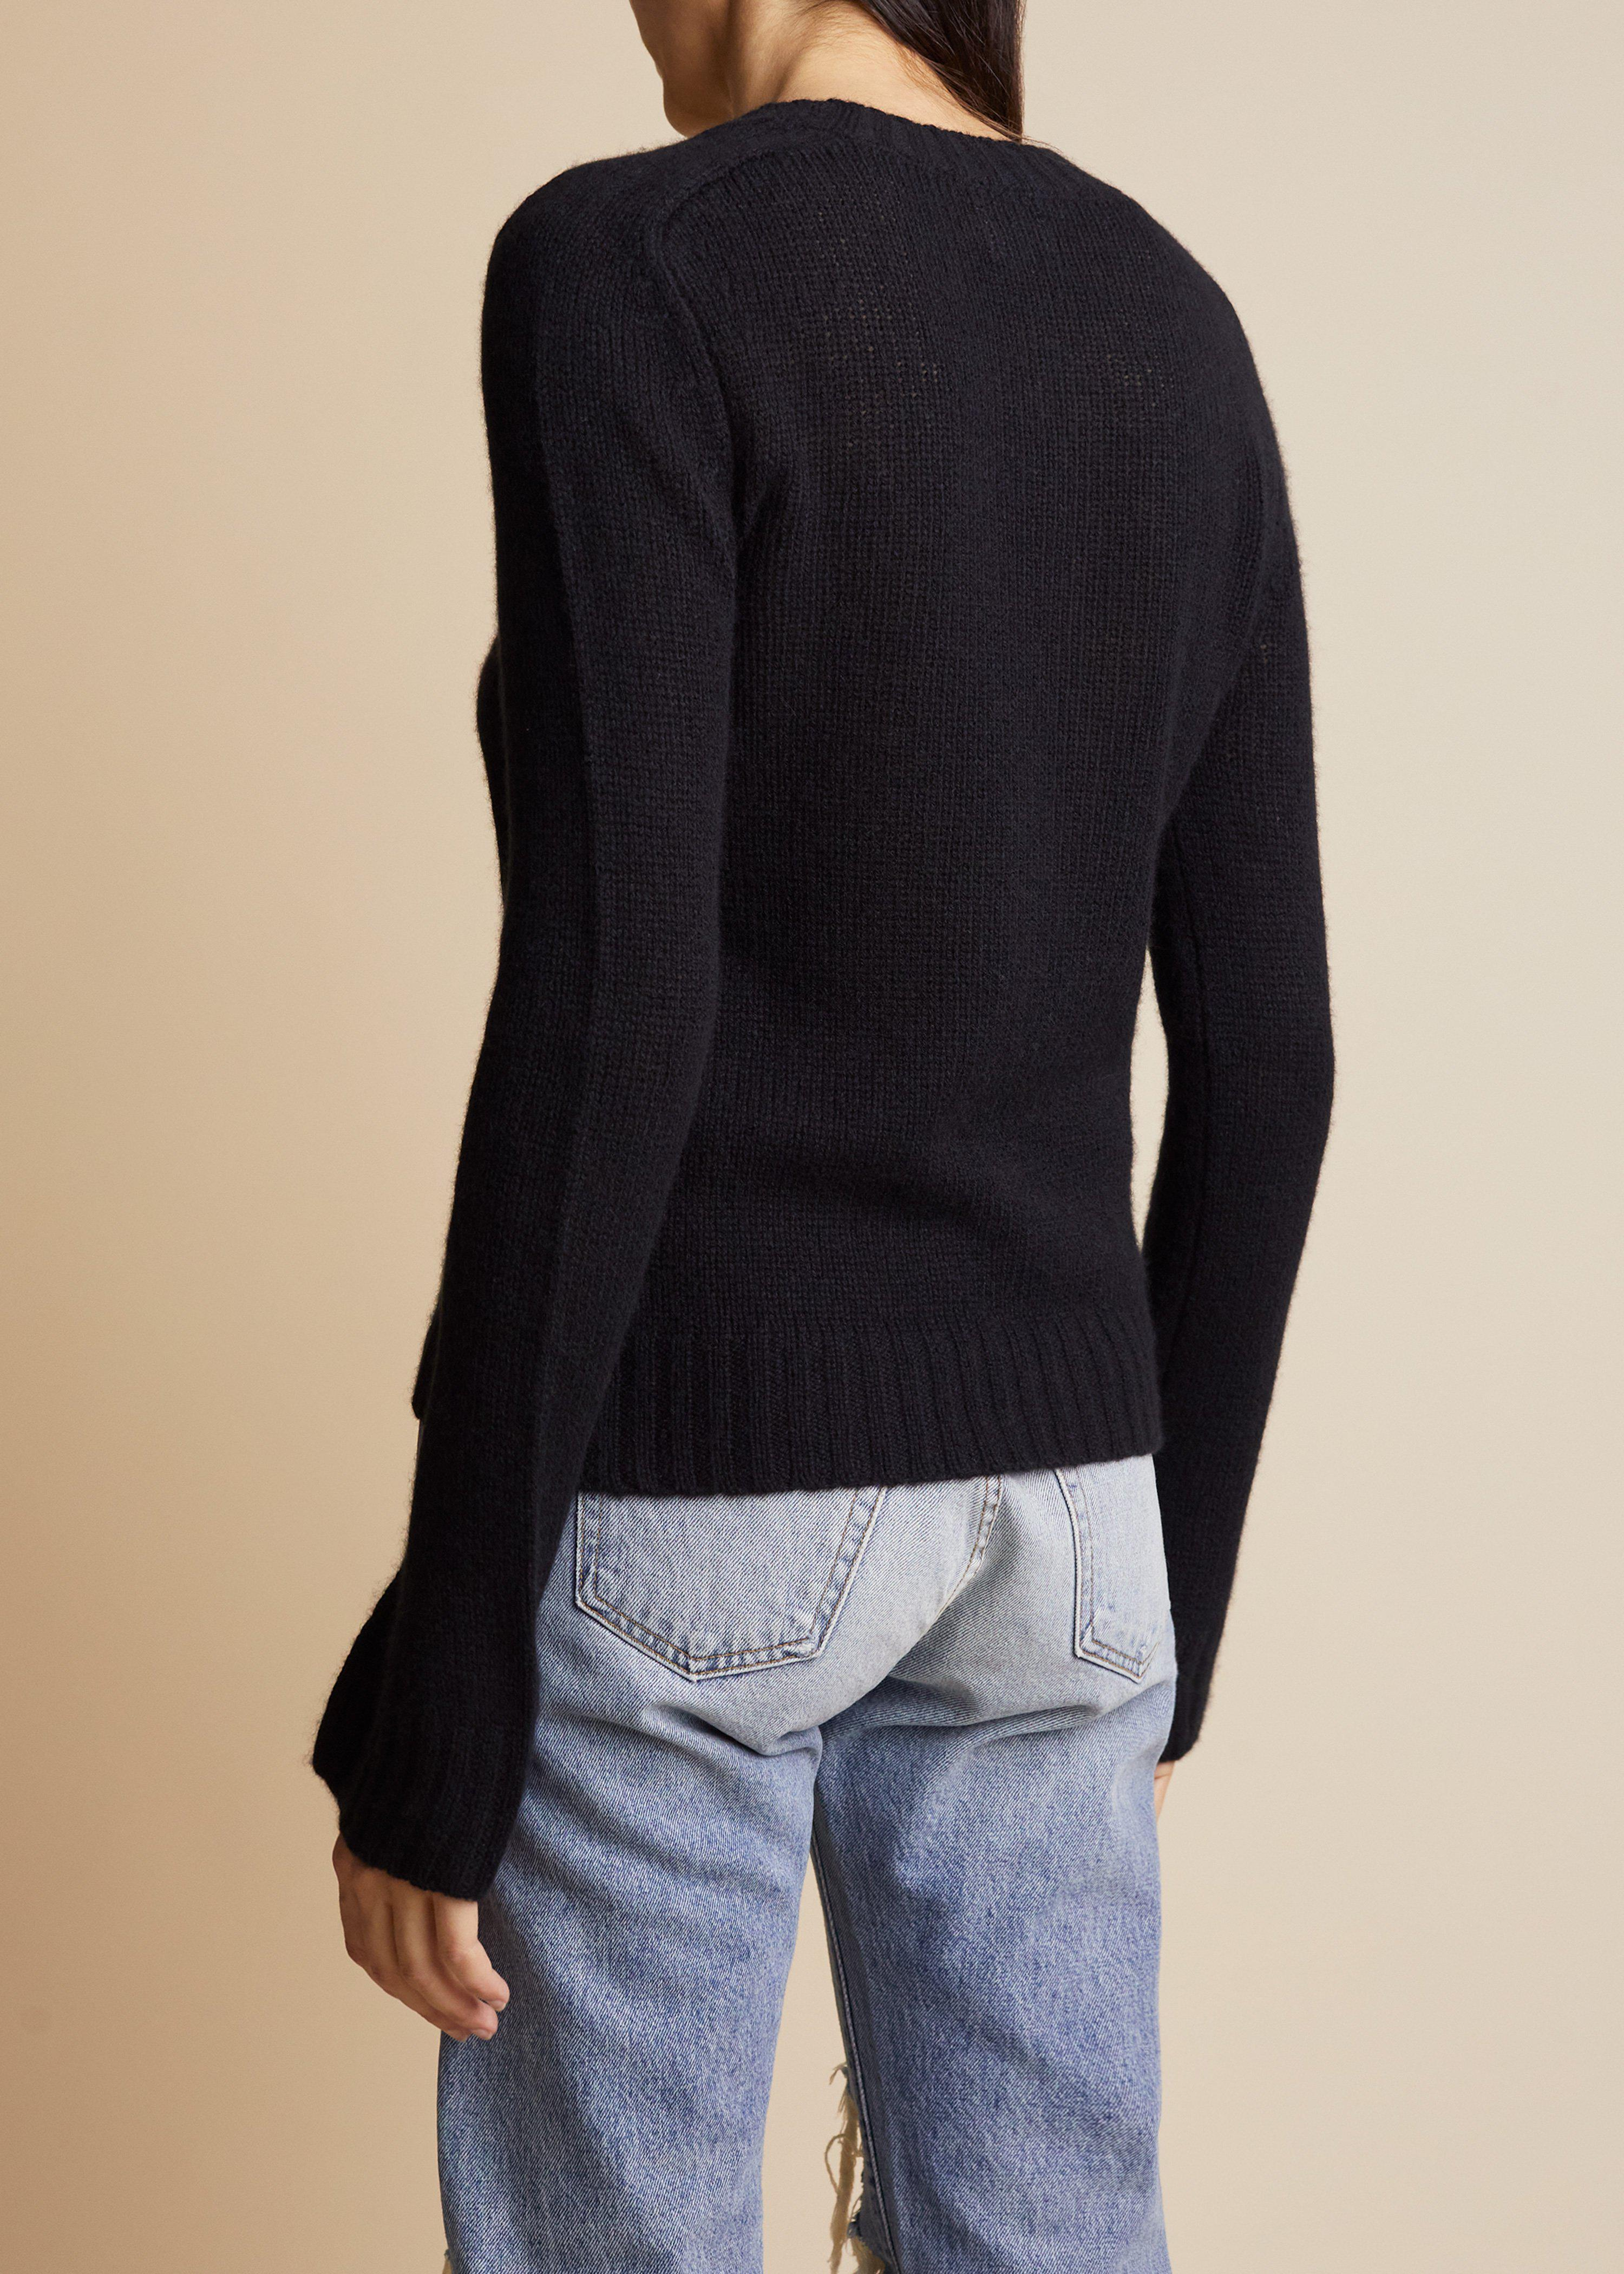 The Mary Jane Sweater in Black 2